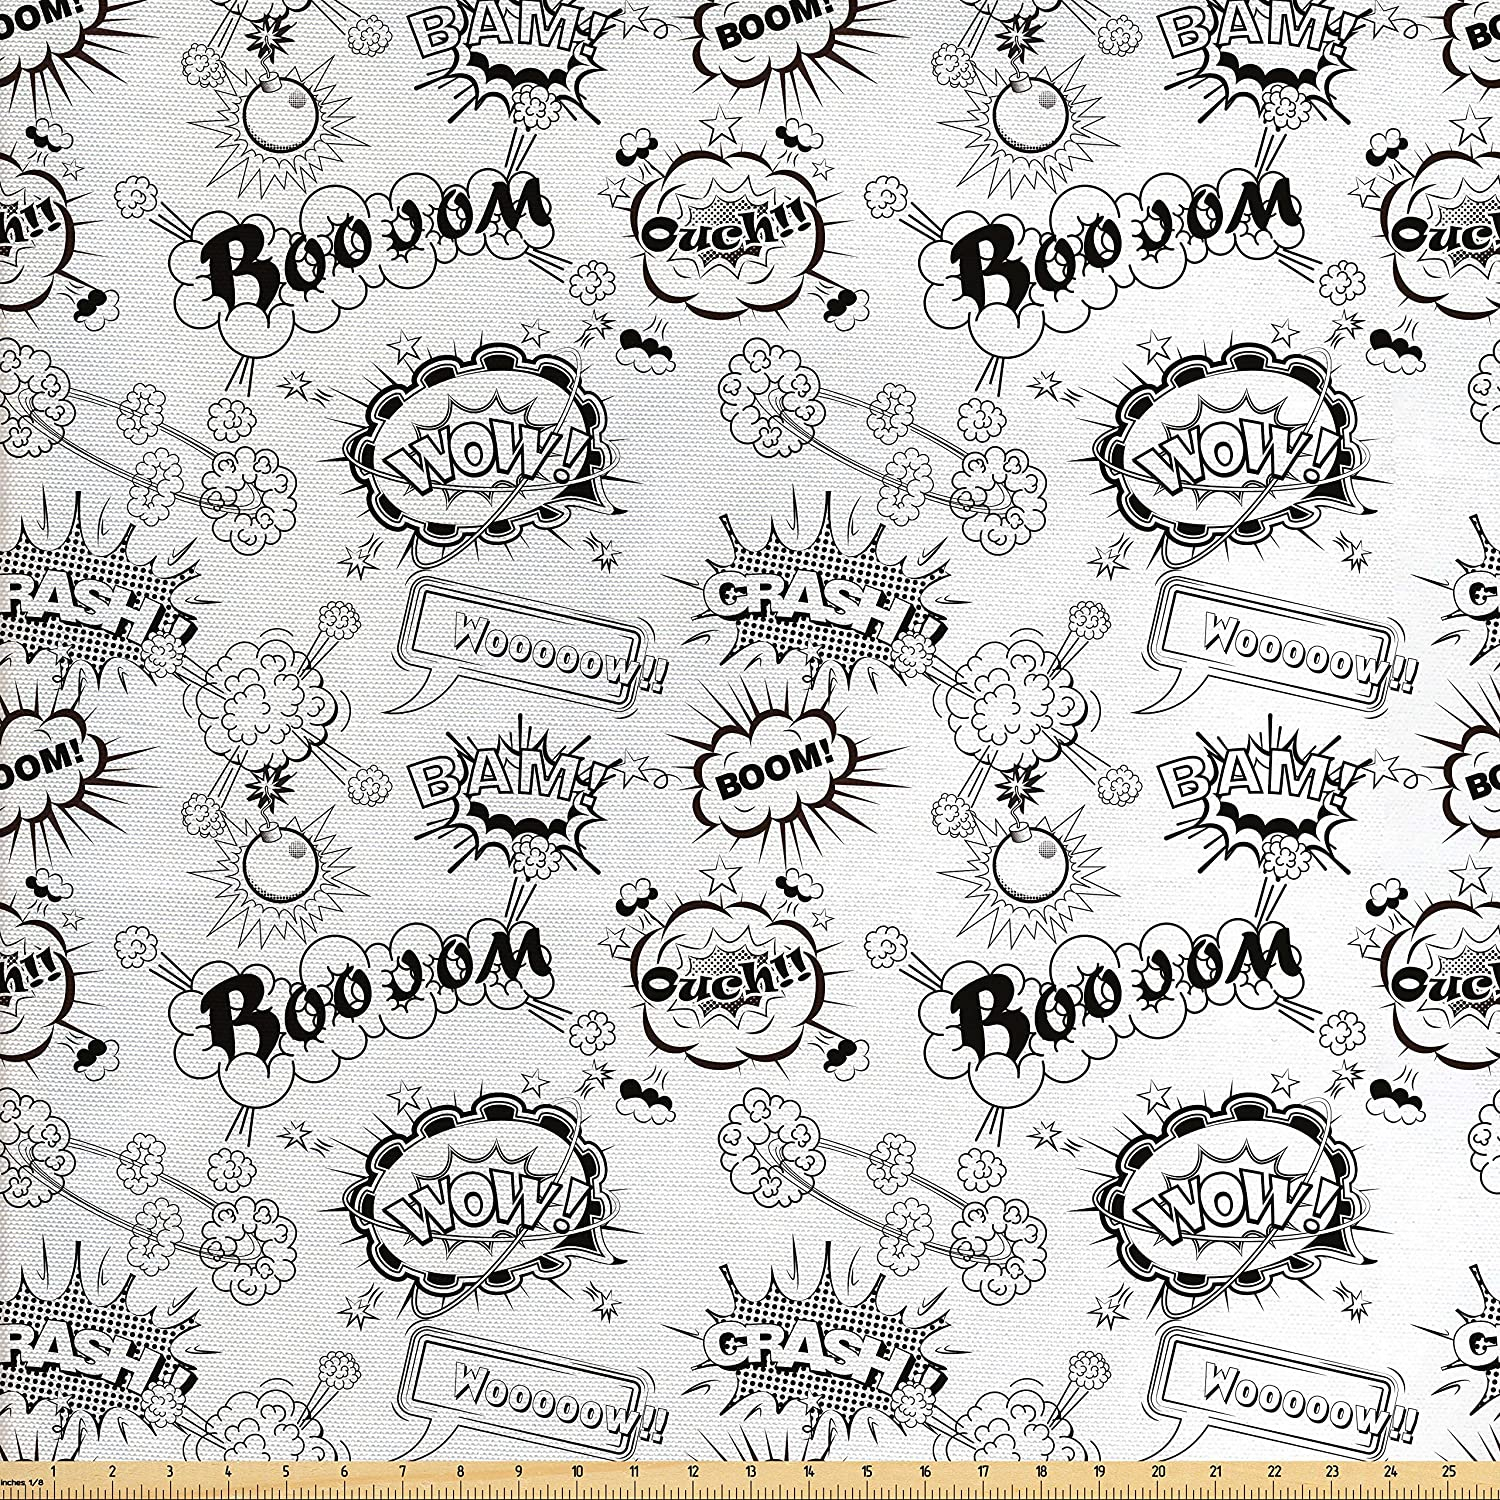 Lunarable Sketch Fabric by The Yard, Pattern with Comic Book Doodle Speech Bubbles Sound Effects Cloud Pop Art Humor, Decorative Fabric for Upholstery and Home Accents, Black and White